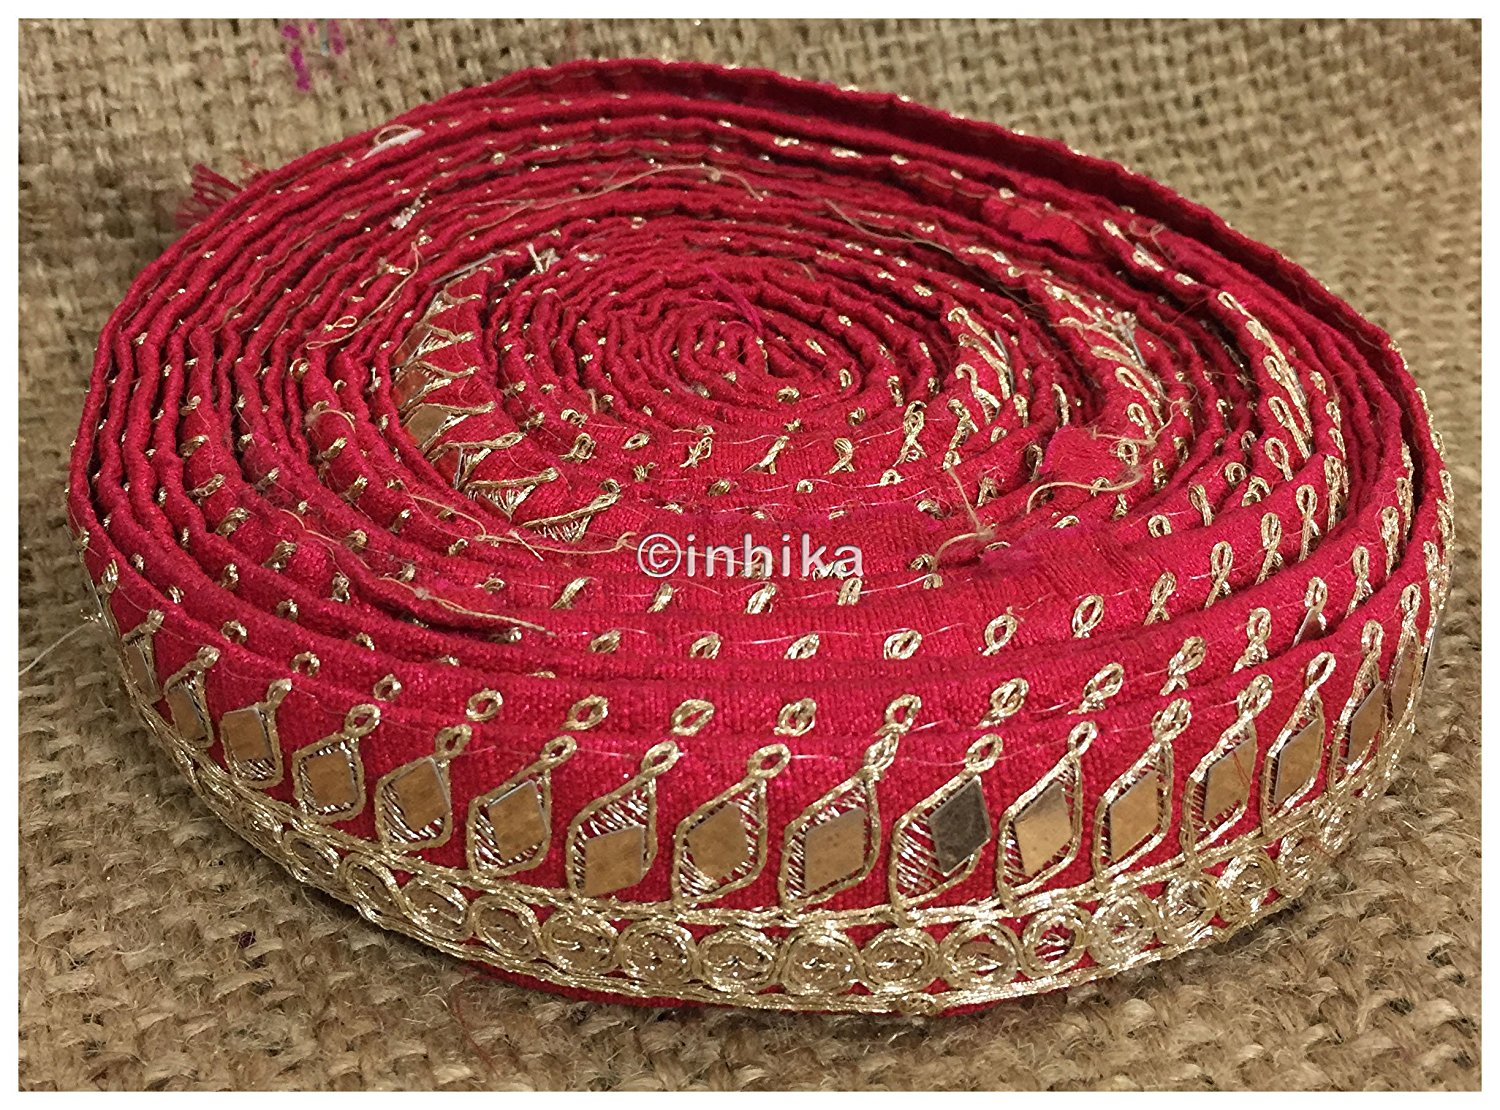 lace trim fabric where to buy fringe for clothing Pink, Embroidery, Mirror, 2 Inch Wide material Cotton Mix